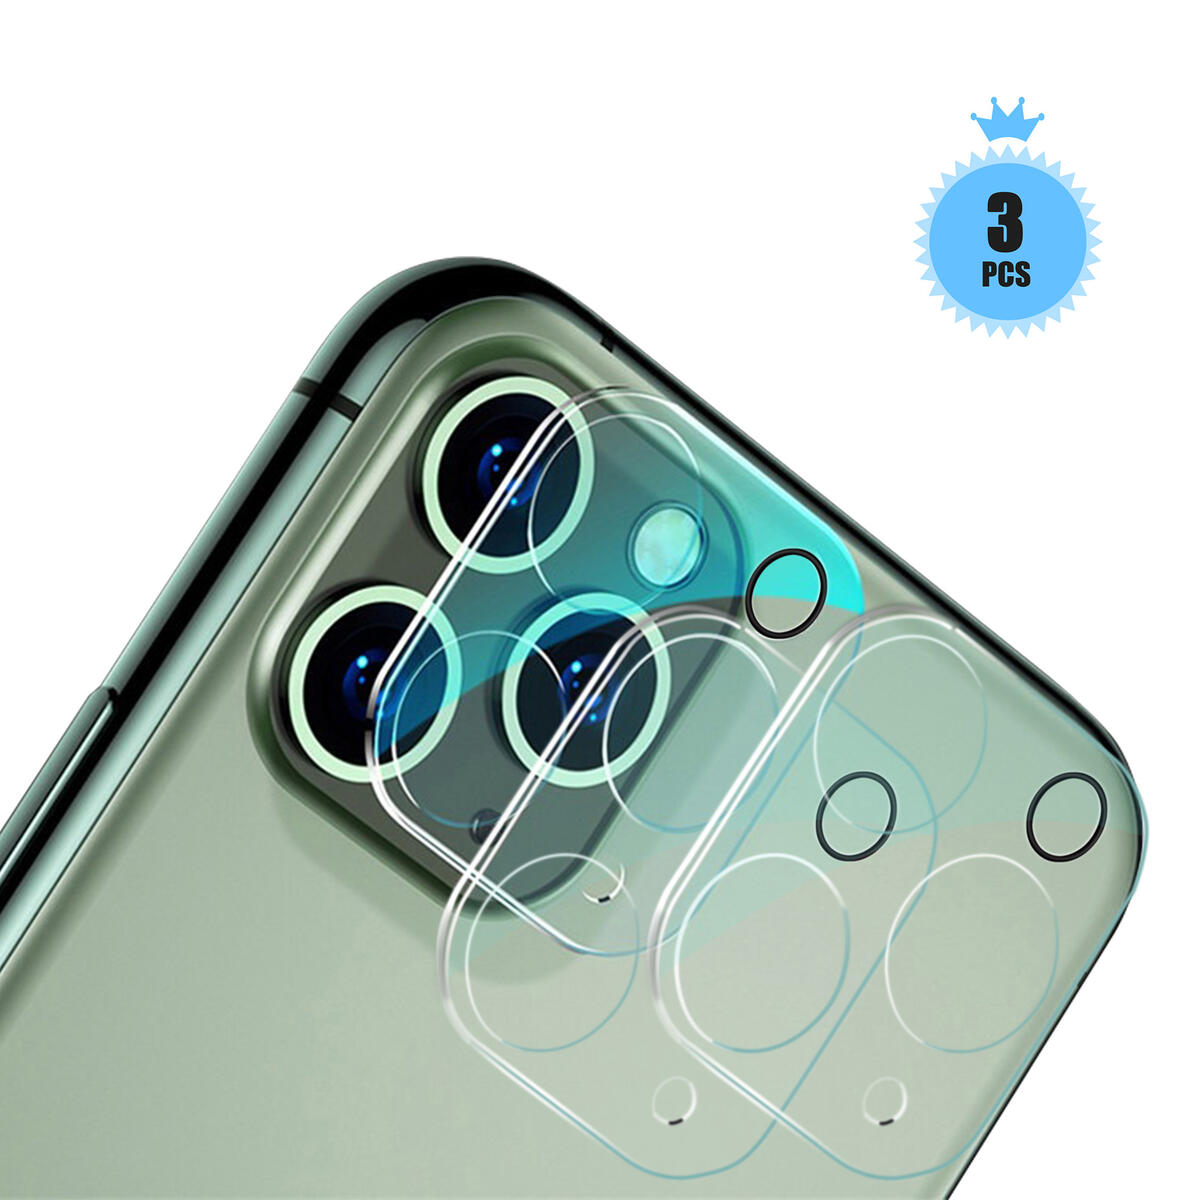 HD Tempered Glass Camera Lens Protector for iPhone 11 Pro/iPhone 11 Pro Max,Ultra-Thin,Clear Screen,Cover Film,Bubble Free,Smooth 3D,Anti-Scratch,Anti-Fingerprint,Easy Install,9H Hardness(3 Packs)